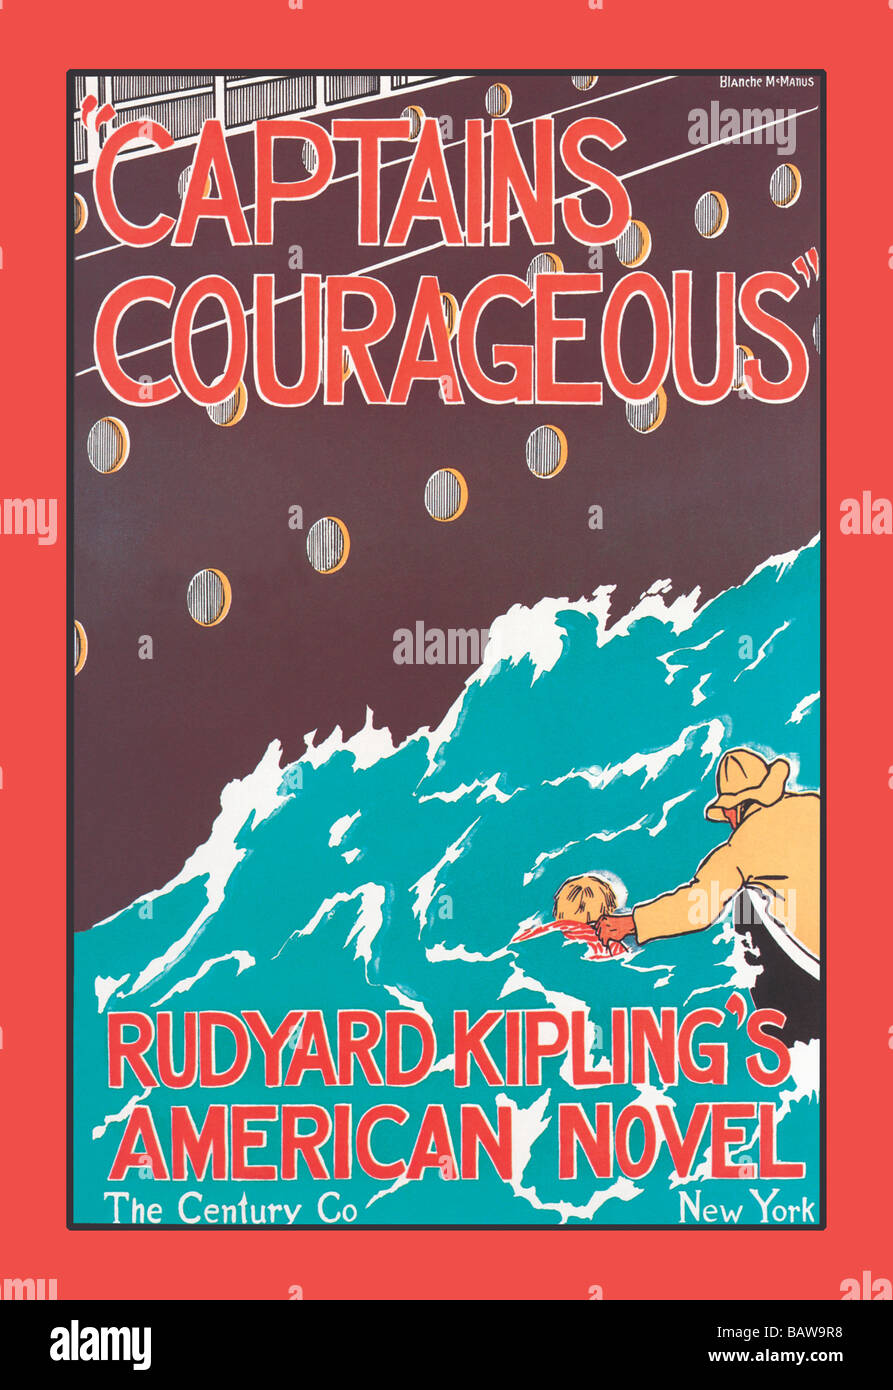 Captains Courageous - Stock Image